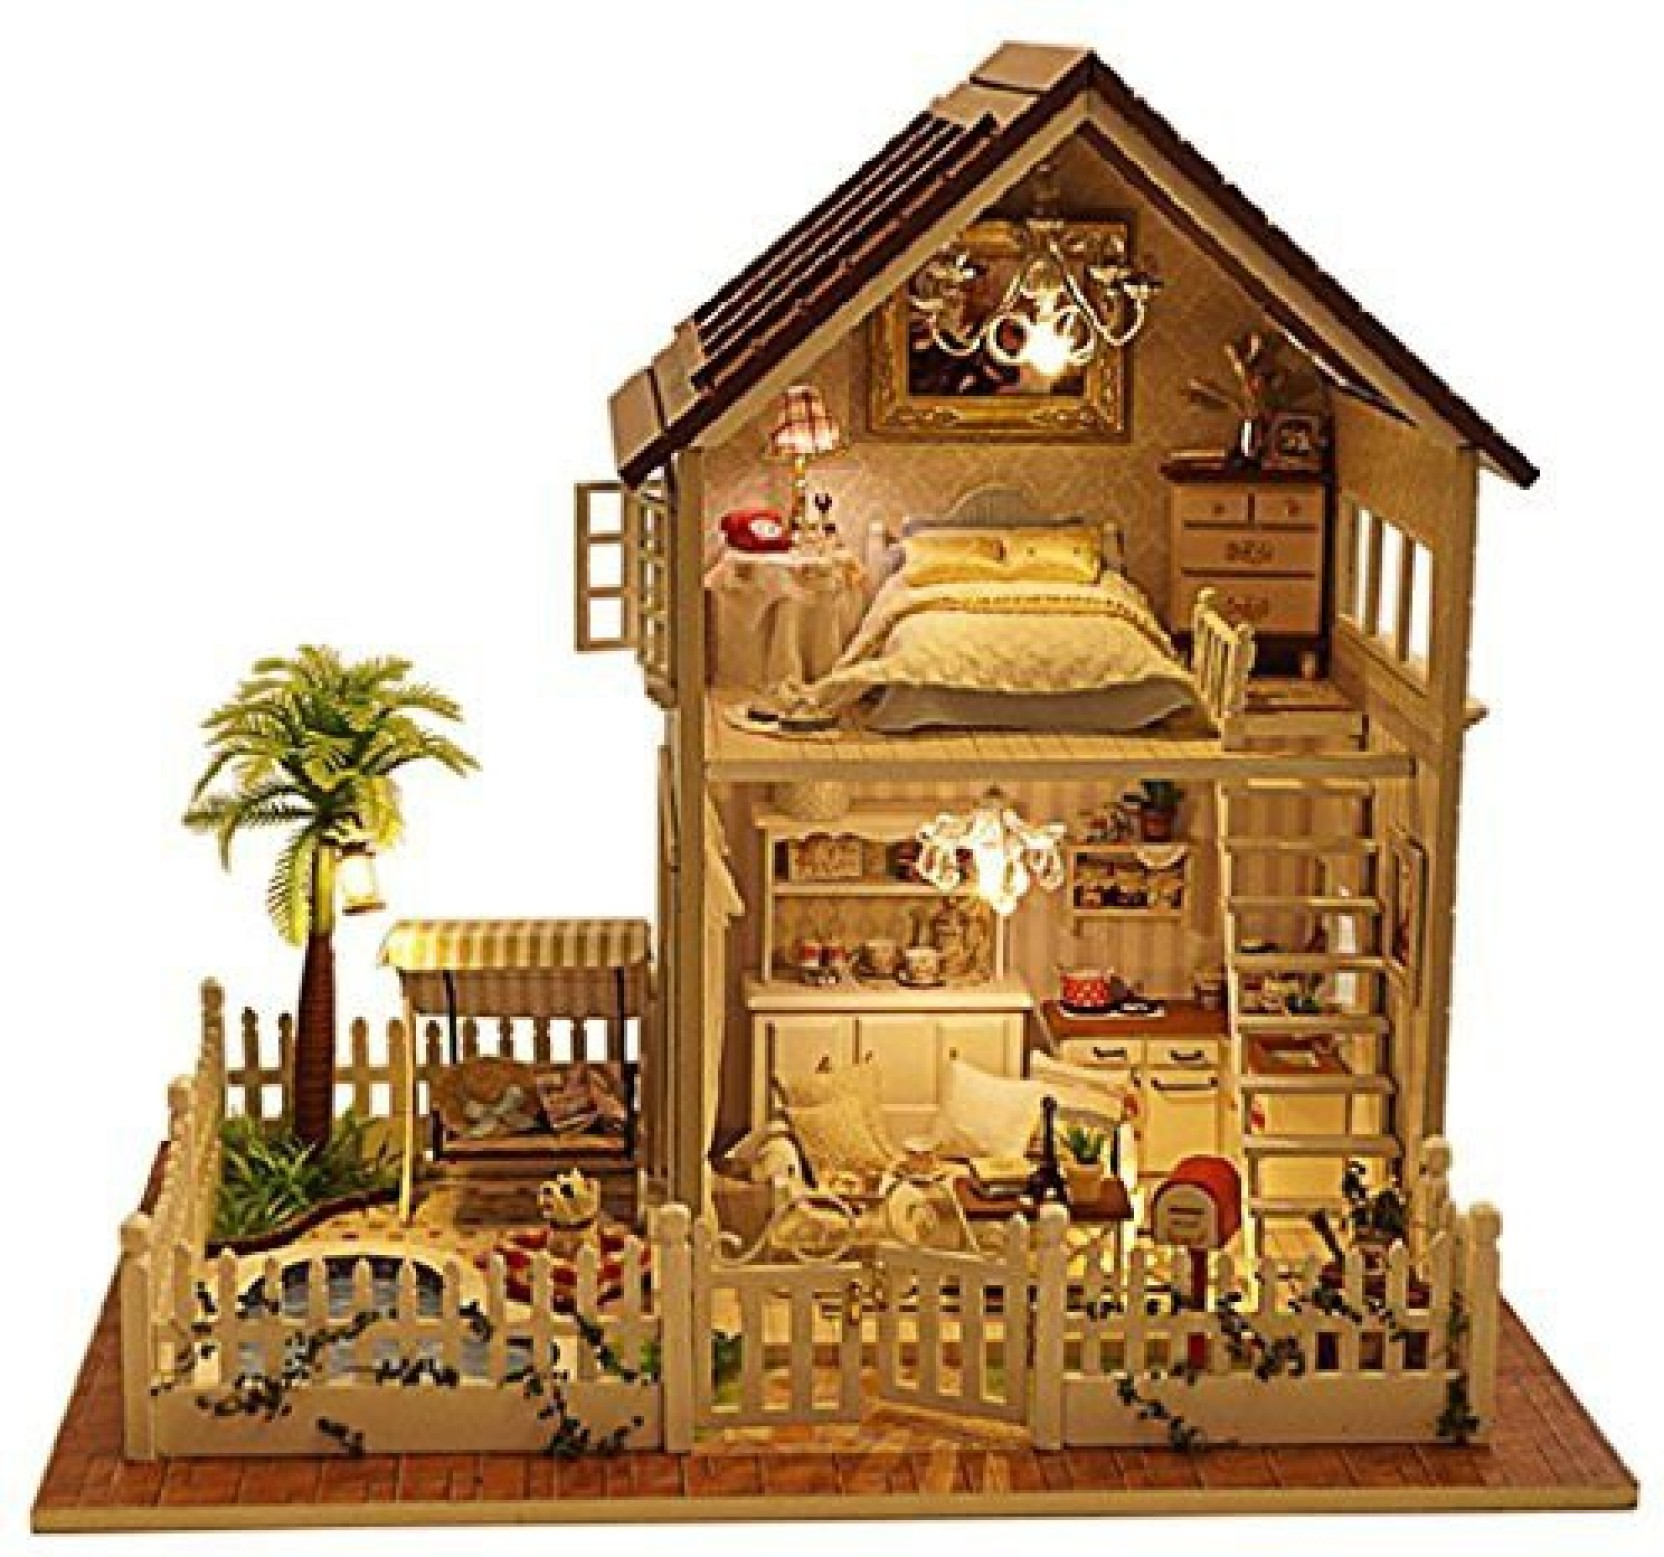 Generic romantic and cute dollhouse miniature diy house kit creative room perfect diy gift for friendslovers and familiesapartment par multicolor